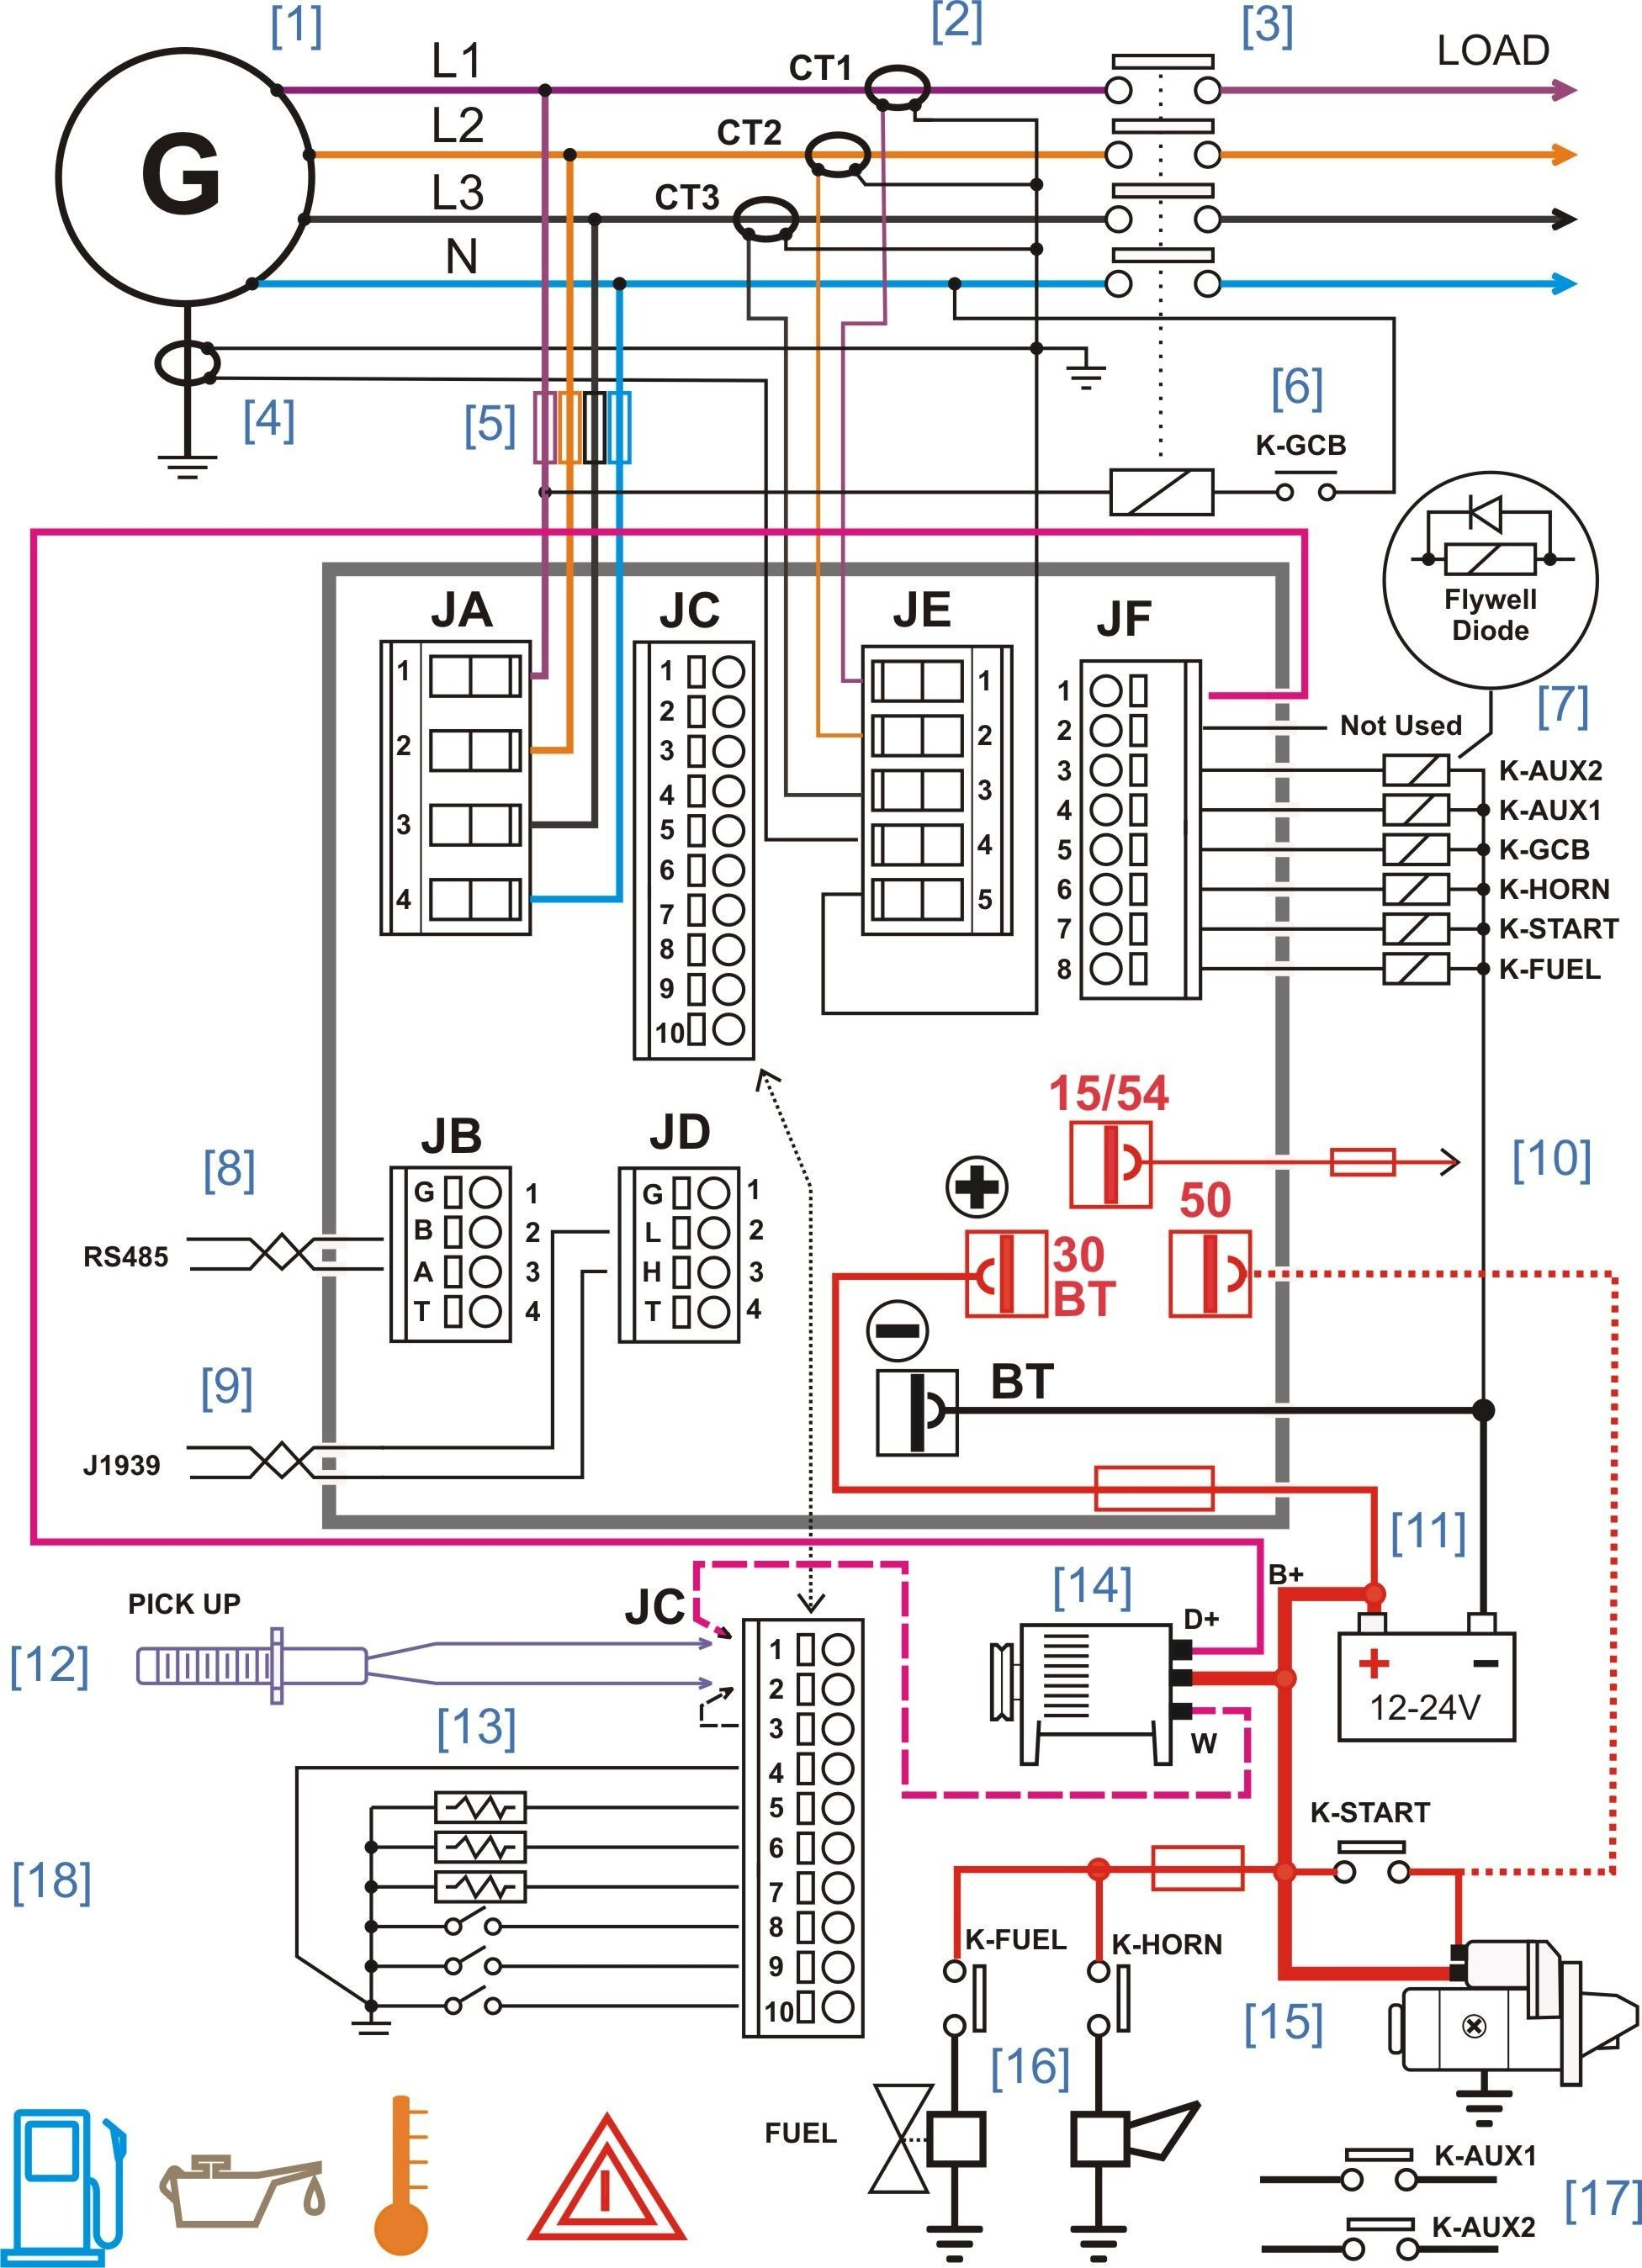 avtron load bank wiring diagram Download-marine load bank wire diagram wire center u2022 wiring diagram rh magnusrosen net 7-a